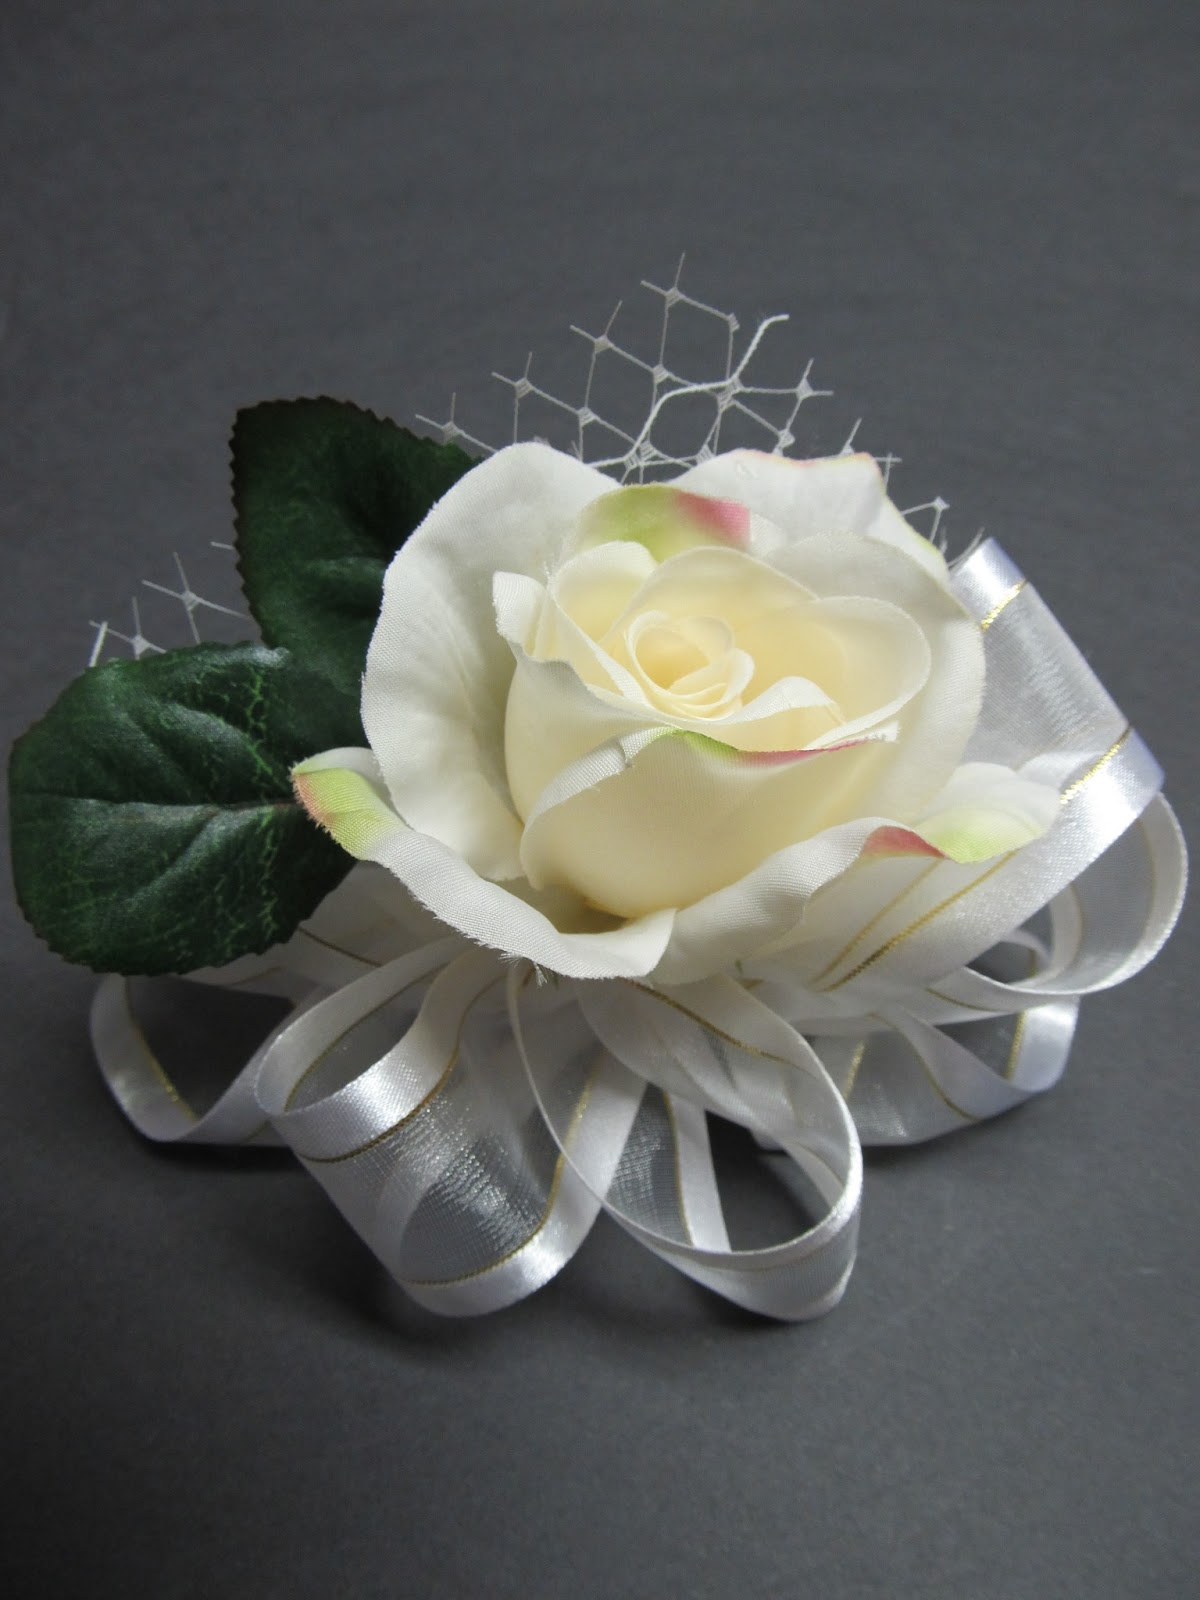 Keepsake Corsages For Mothers Day Bridal Shower Mother Of The Bride Or Any Special Occasion